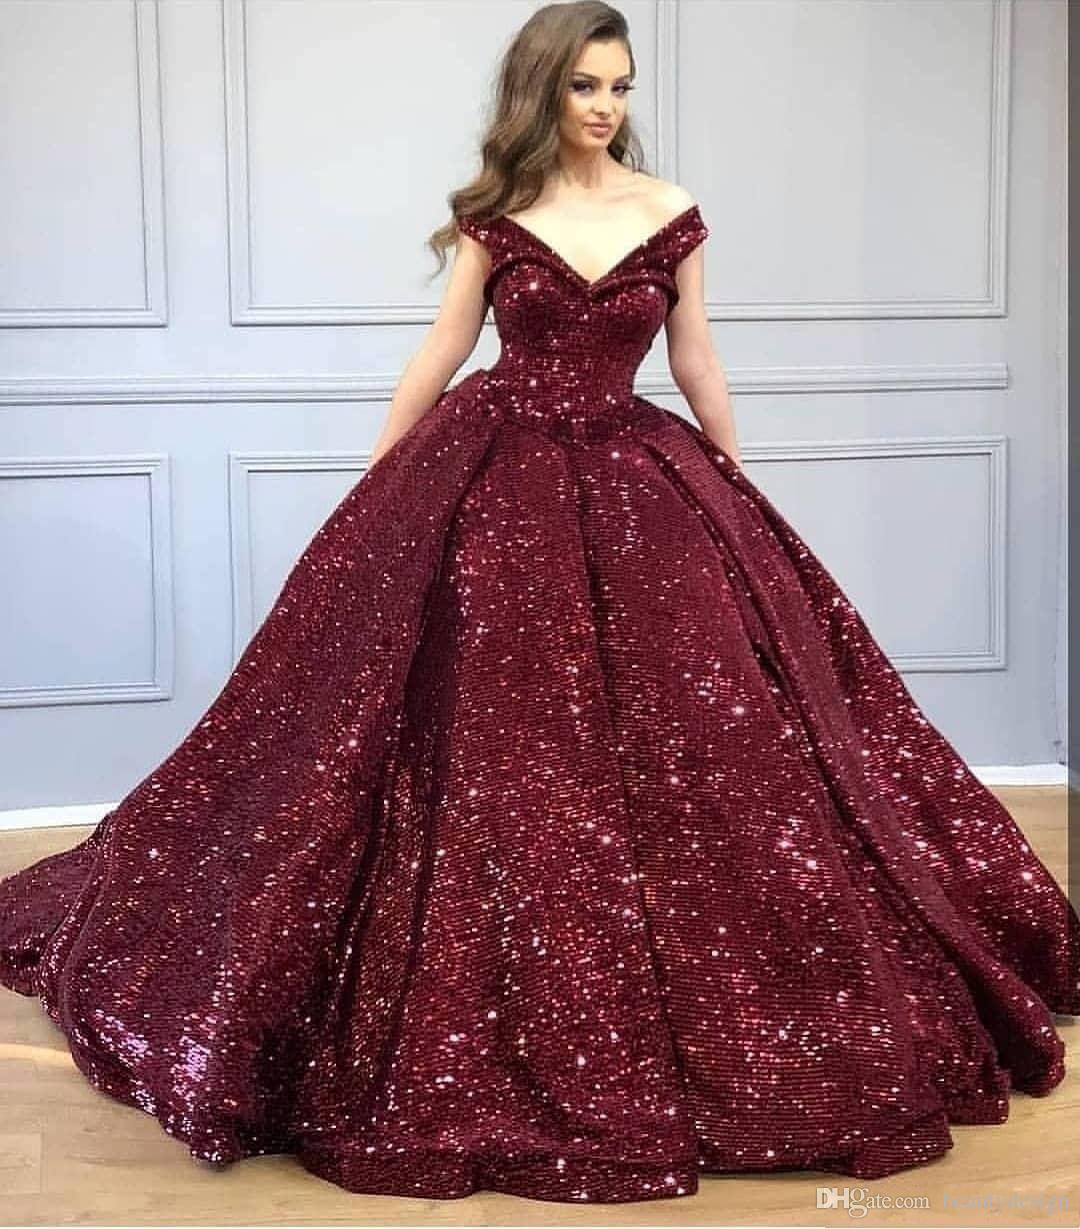 2020 New Burgundy Bling Sequined Off Shoulder Quinceanera Dresses V Neck Sequins Ball Gown Evening Party Dress Plus Size Sweet 15 Wear